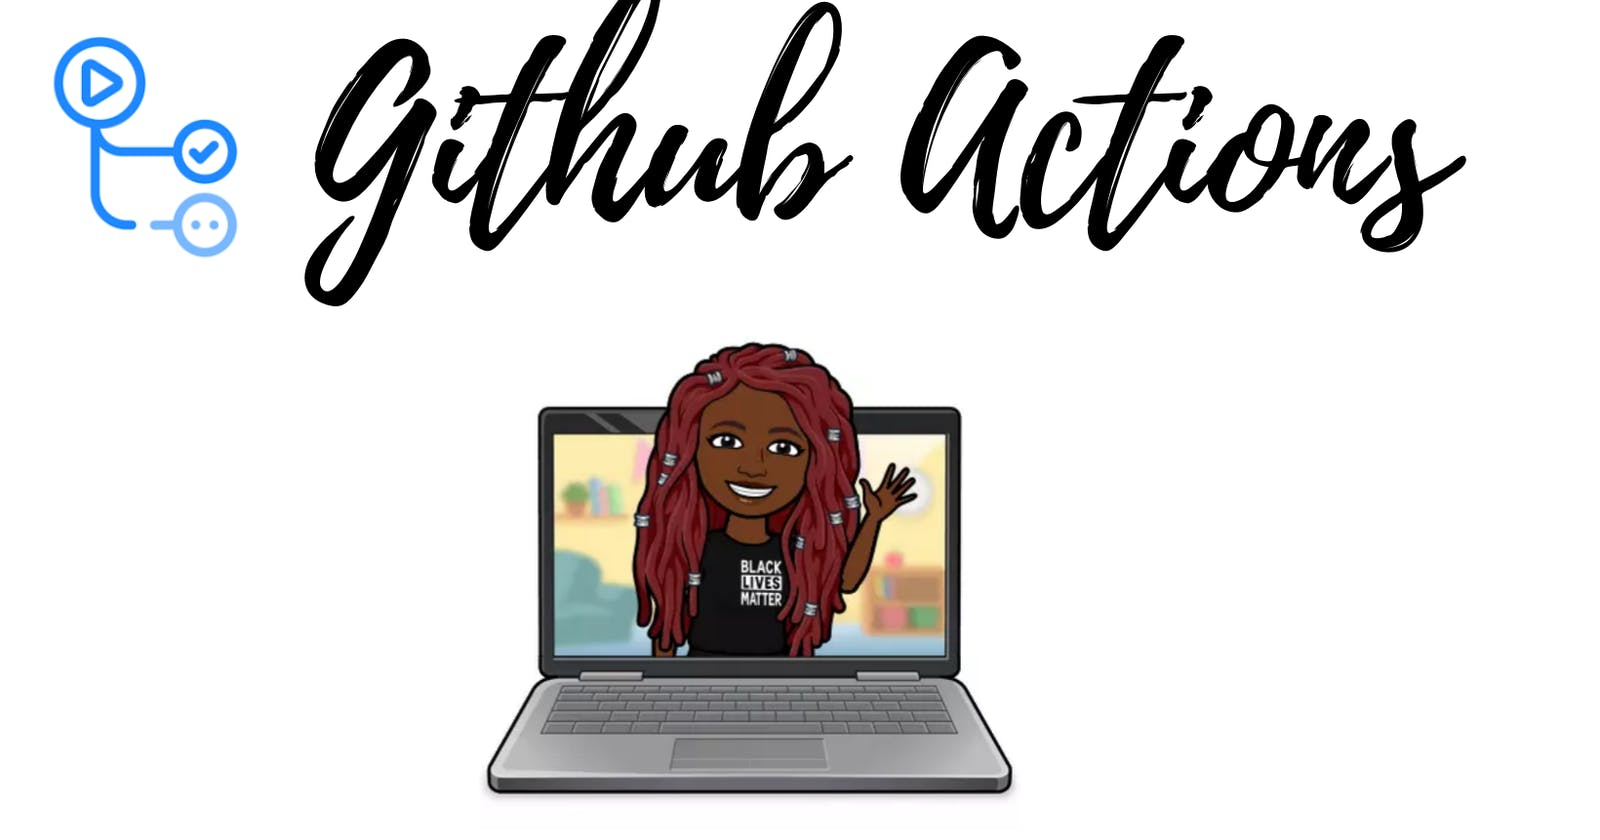 How to Sync an S3 Bucket with GitHub Actions